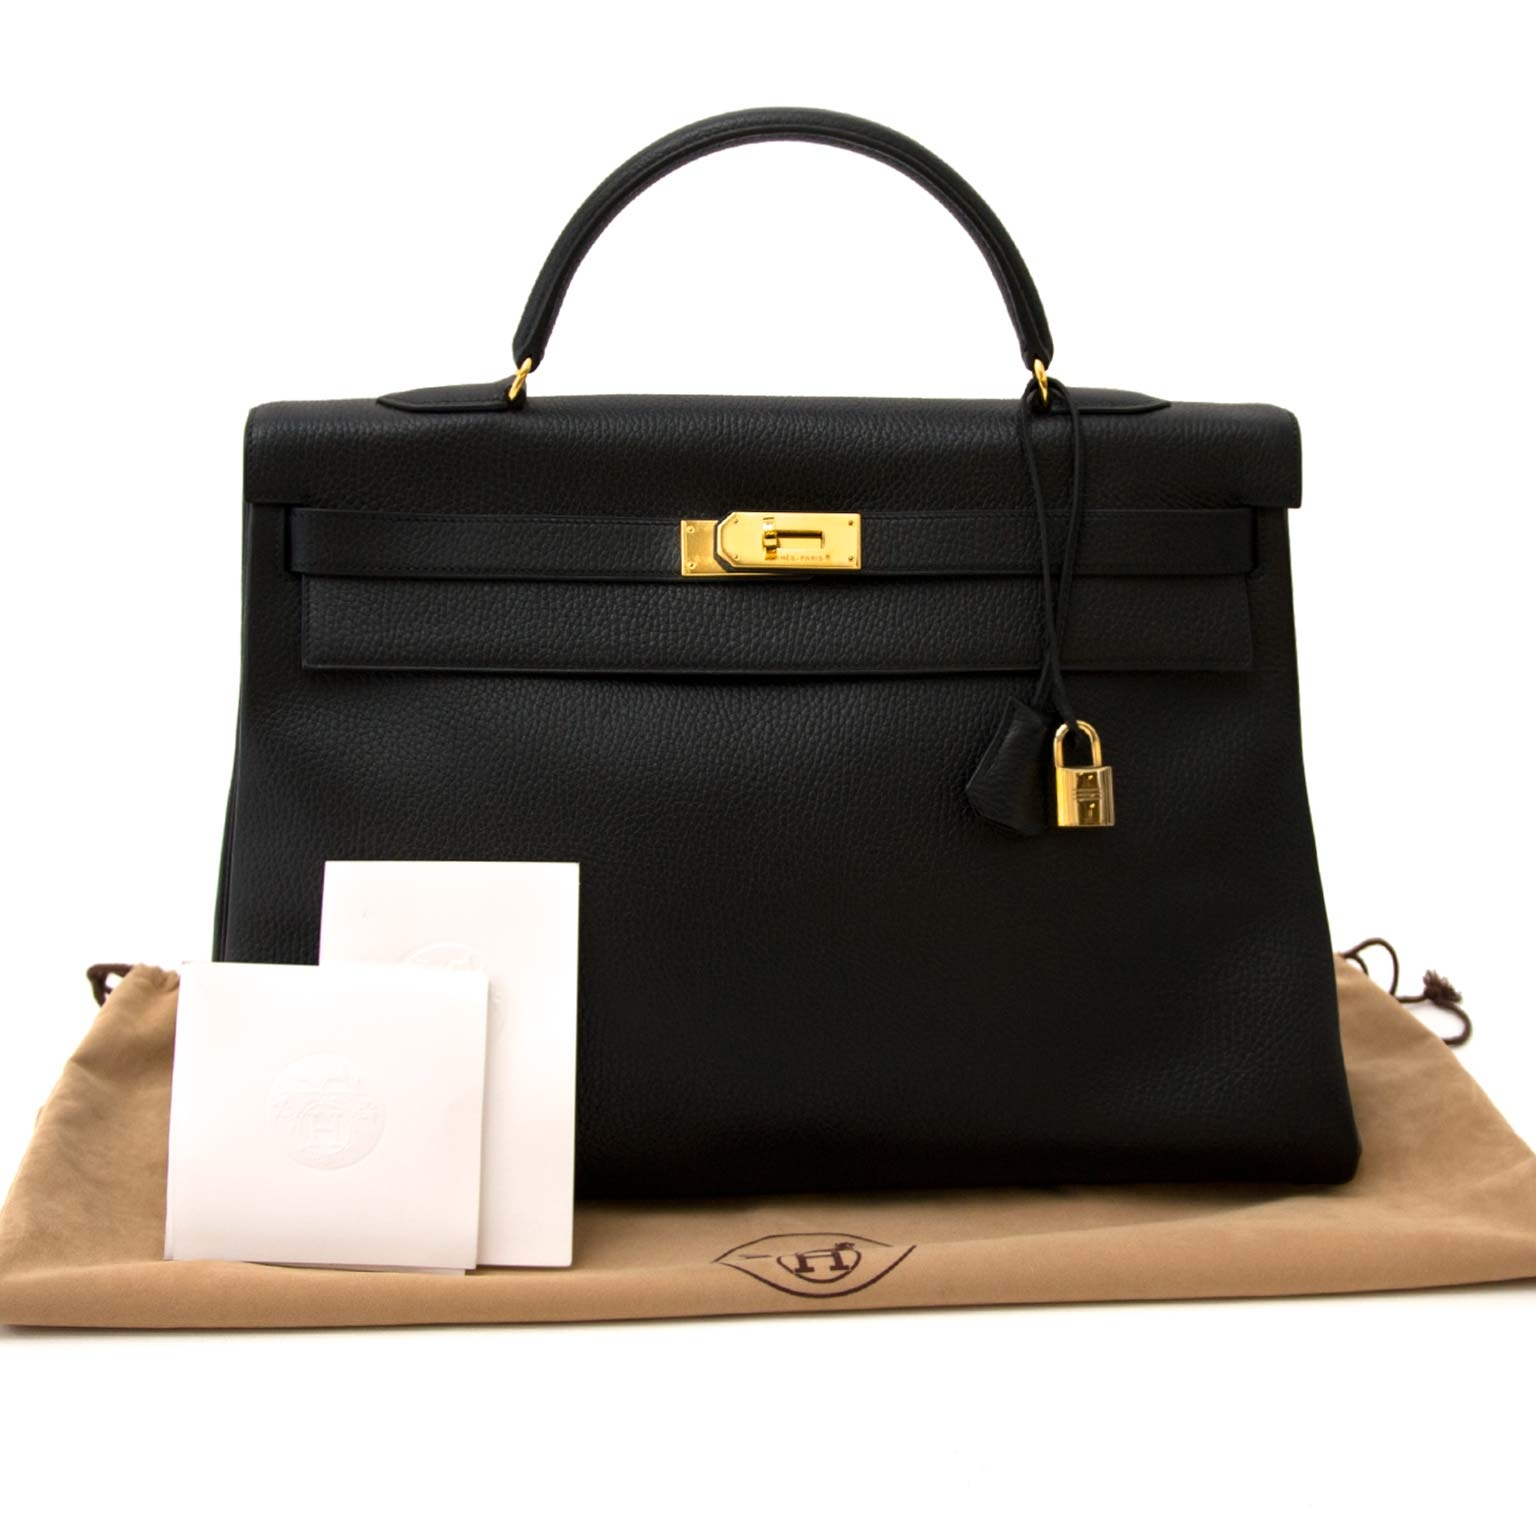 4d090e31743 ... Hermès Kelly 40cm Black Veau Grainee Ardennes GHW for the best price at  Labellov